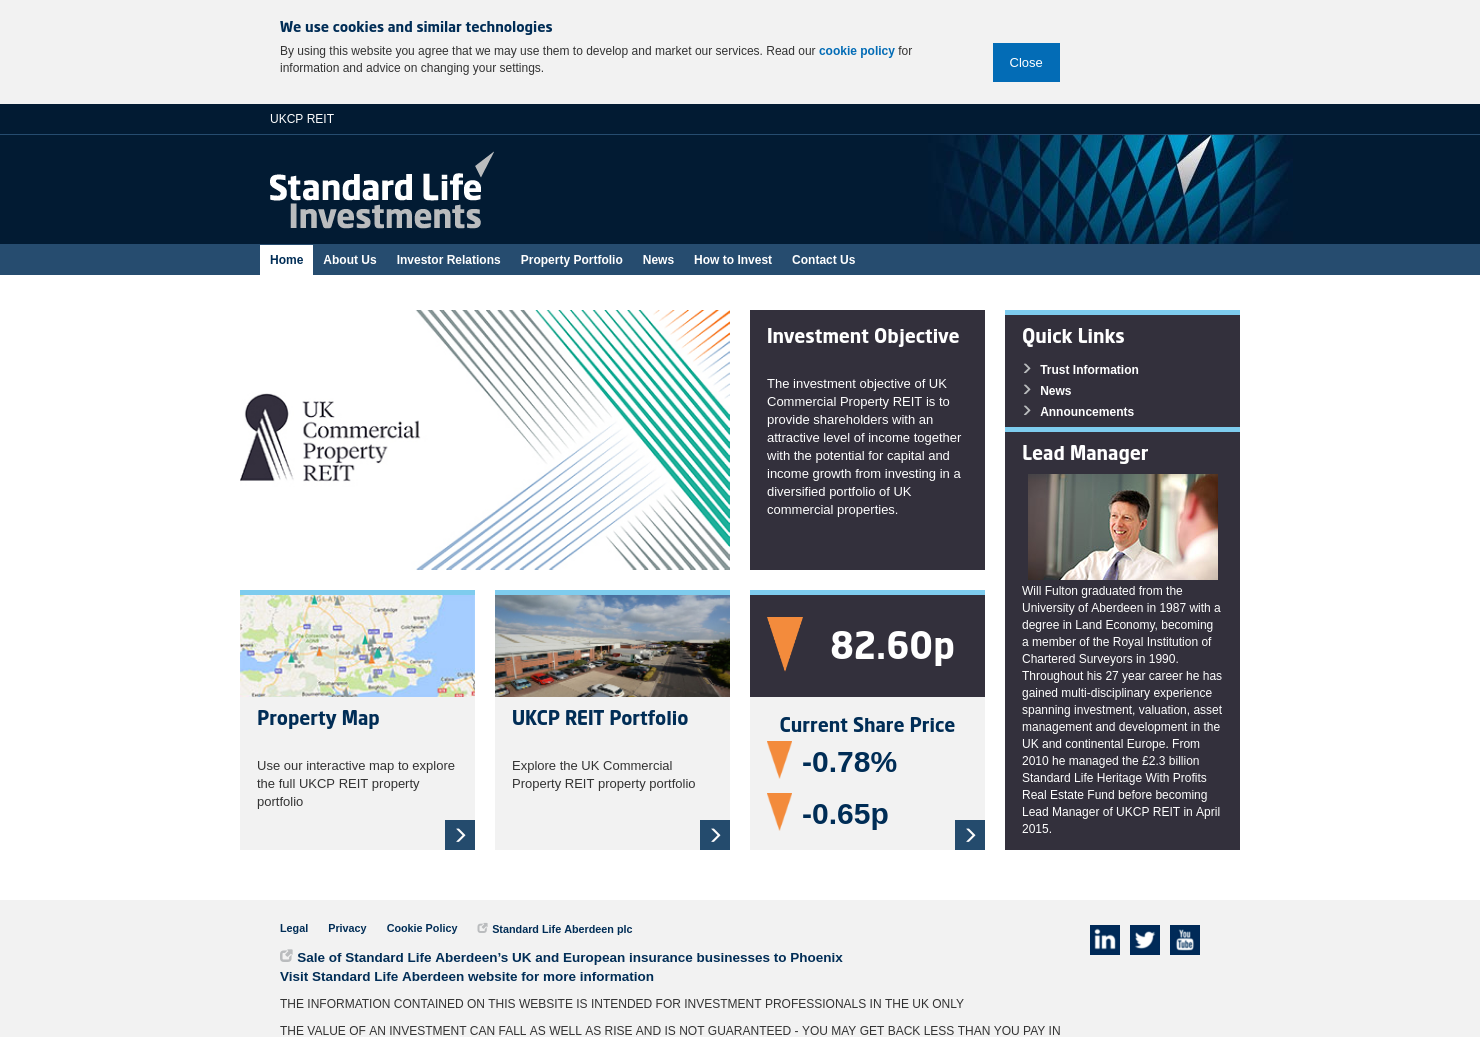 UK Commercial Property Trust Home Page